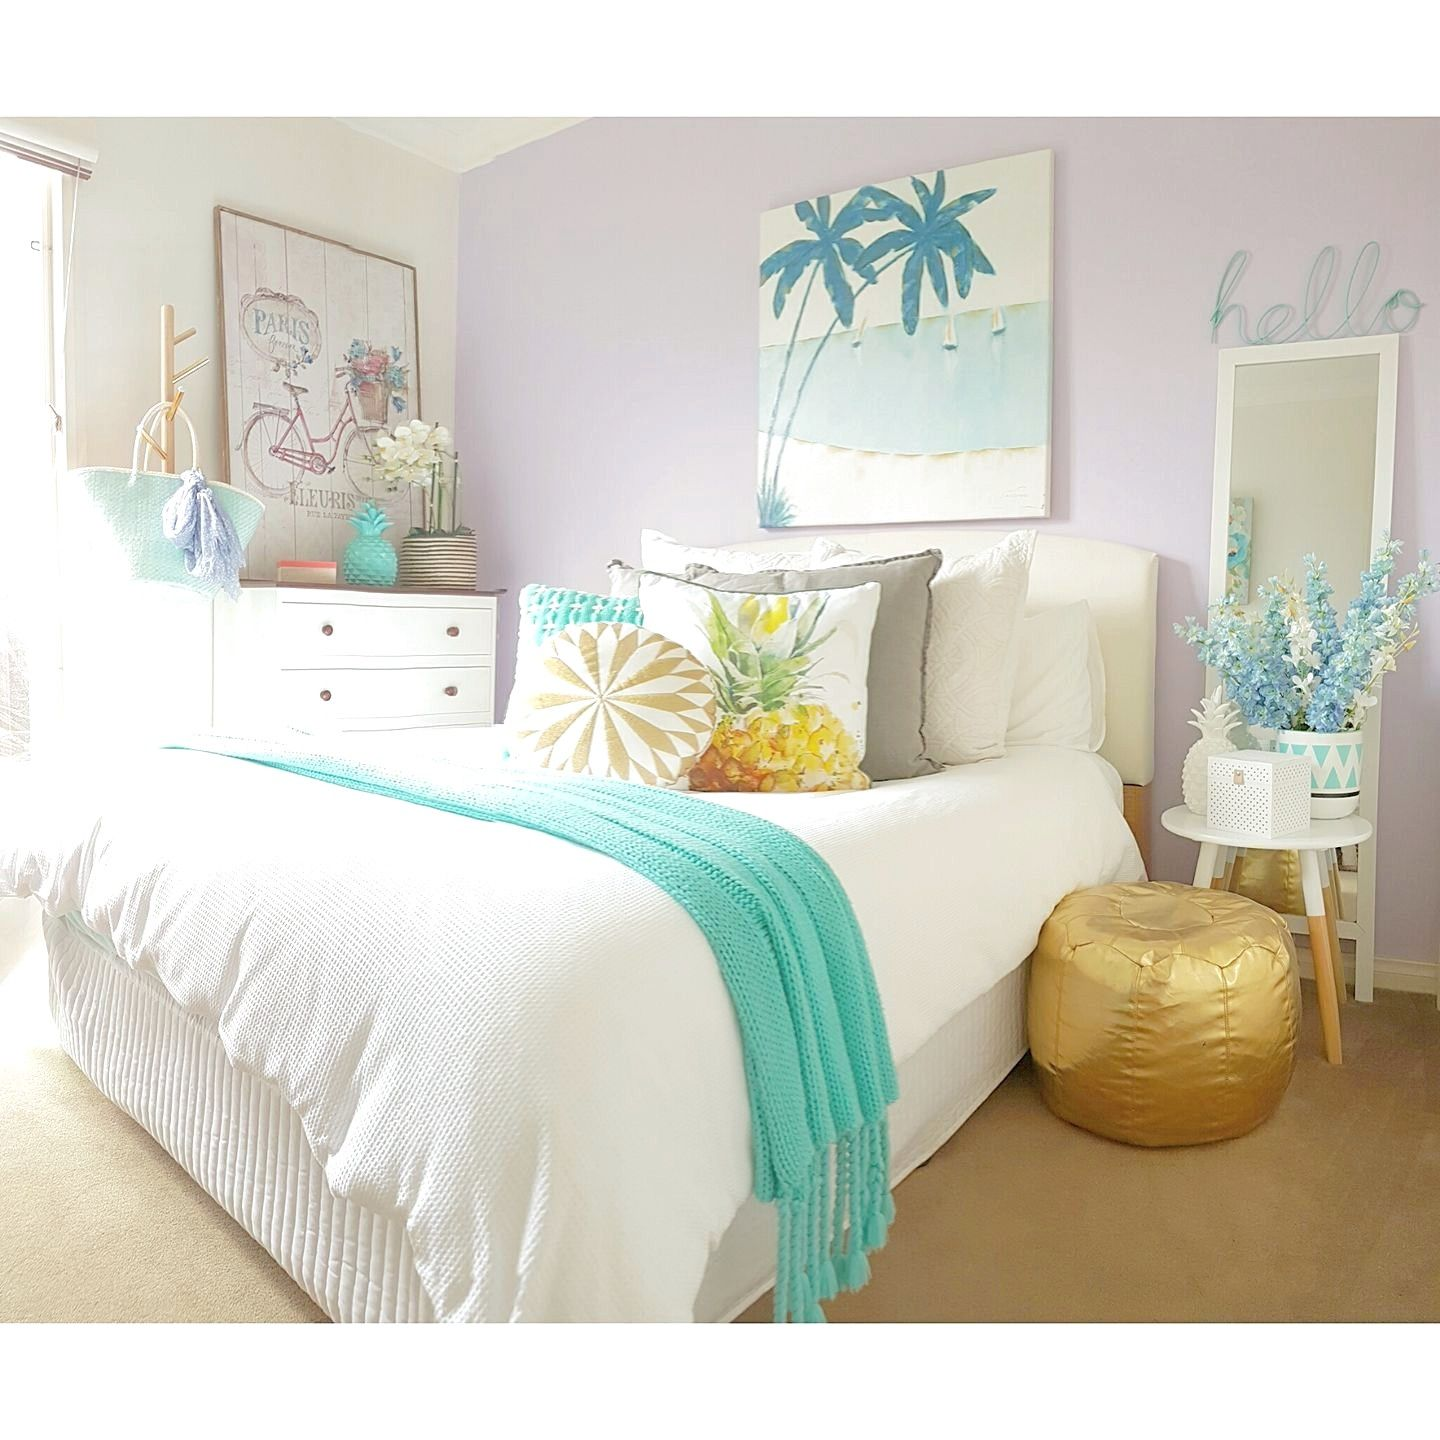 Teenage Bedroom Accessories Uk Bedroom Ideas Bedroomteenage Bedroomgirl Patio Cute Romantic Modern Bedr Girly Bedroom Girl Bedroom Decor Girls Bedroom